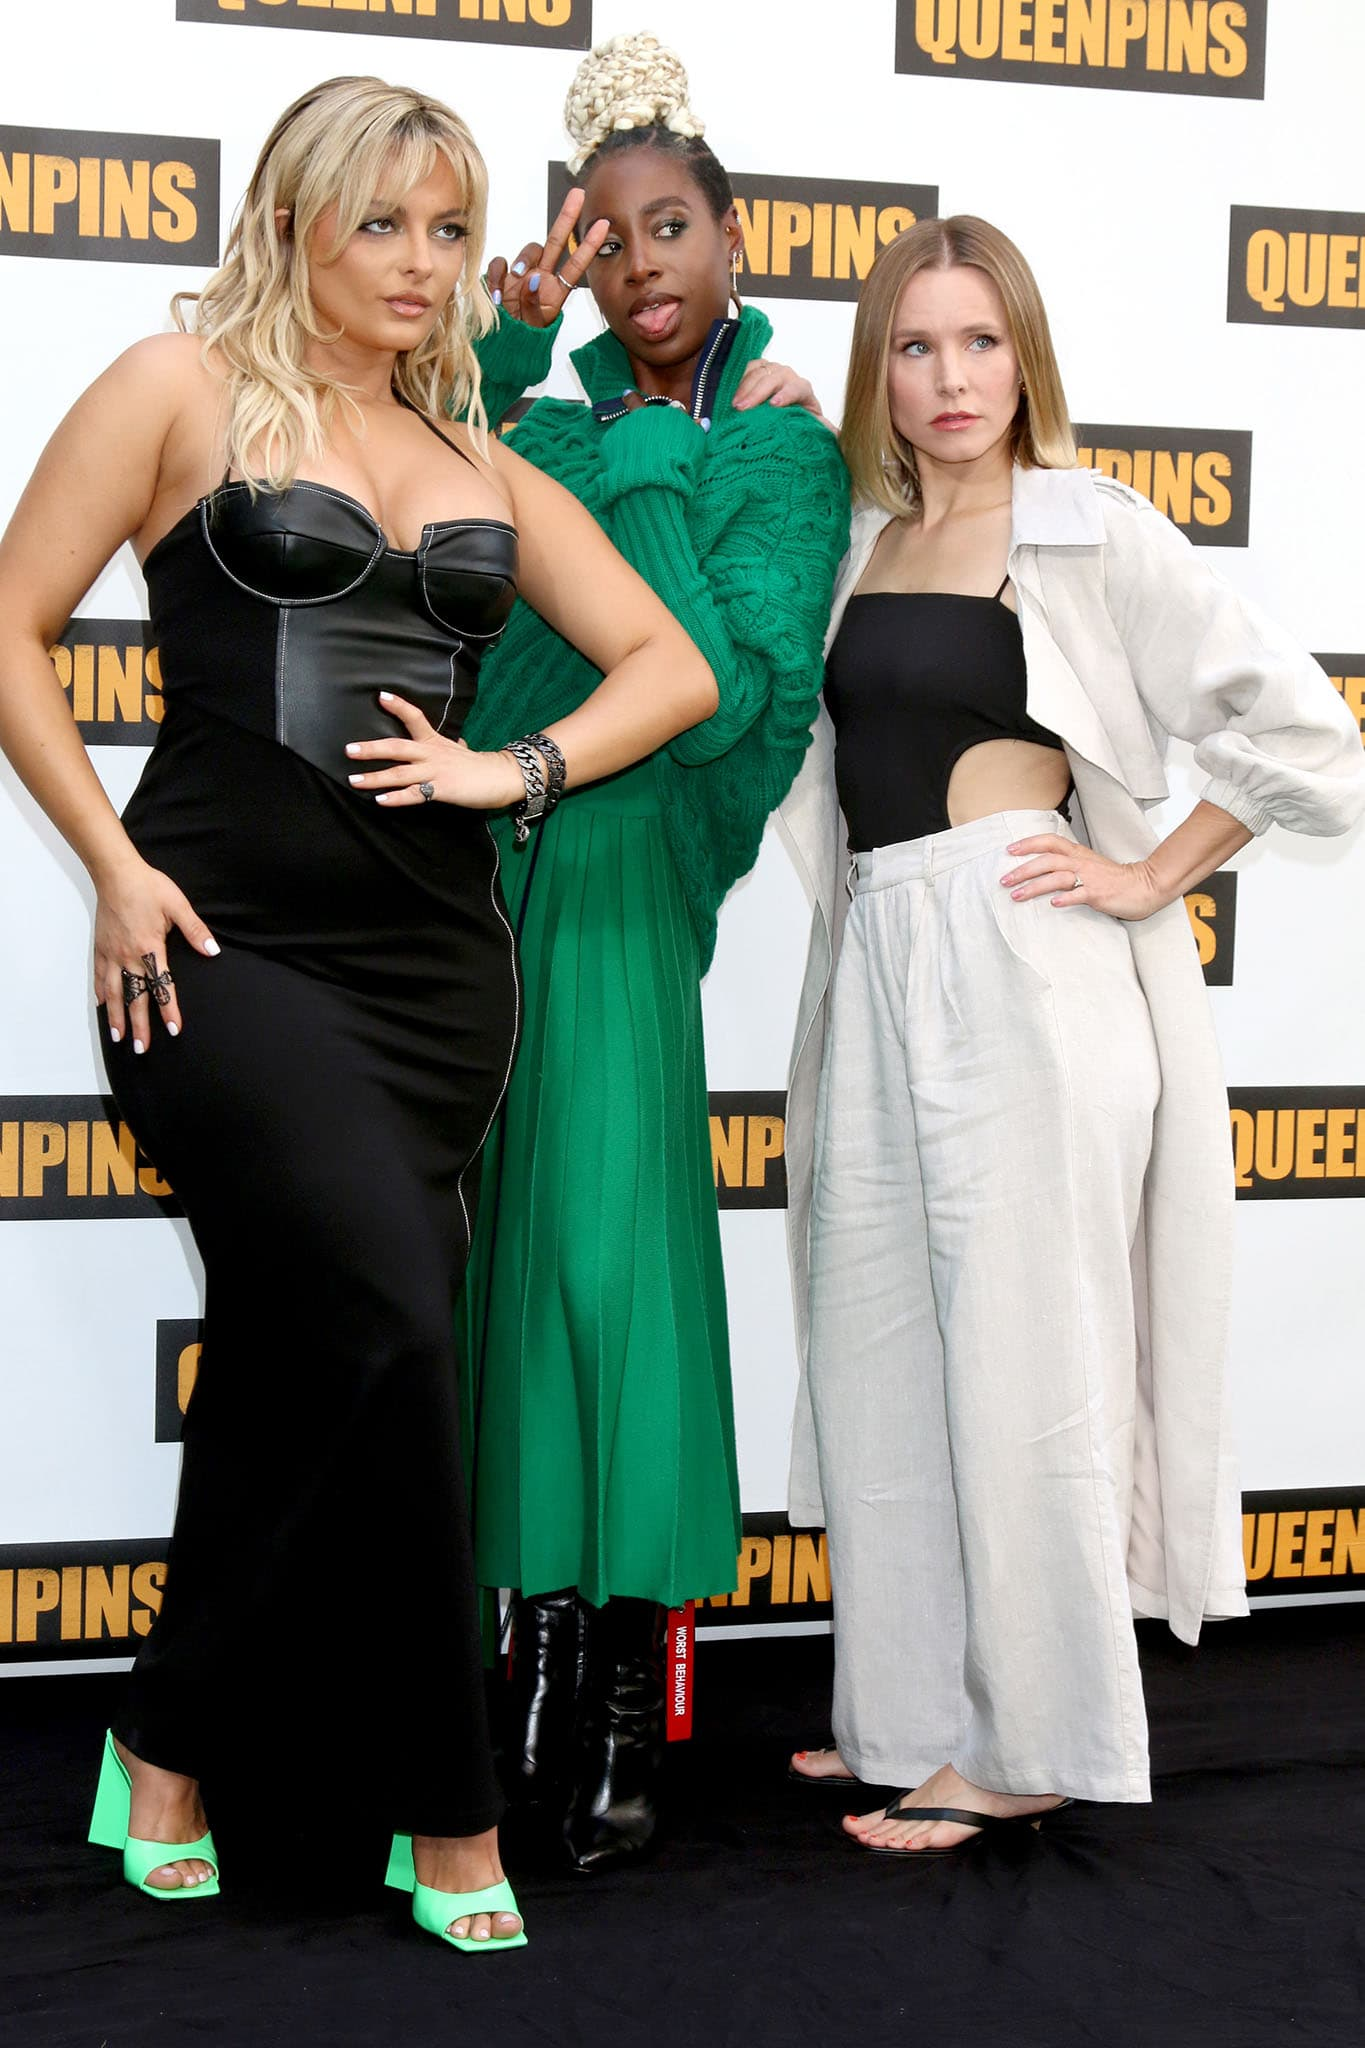 Bebe Rexha, Kirby Howell-Baptiste, and Kristen Bell pose for photos at the Queenpins photocell